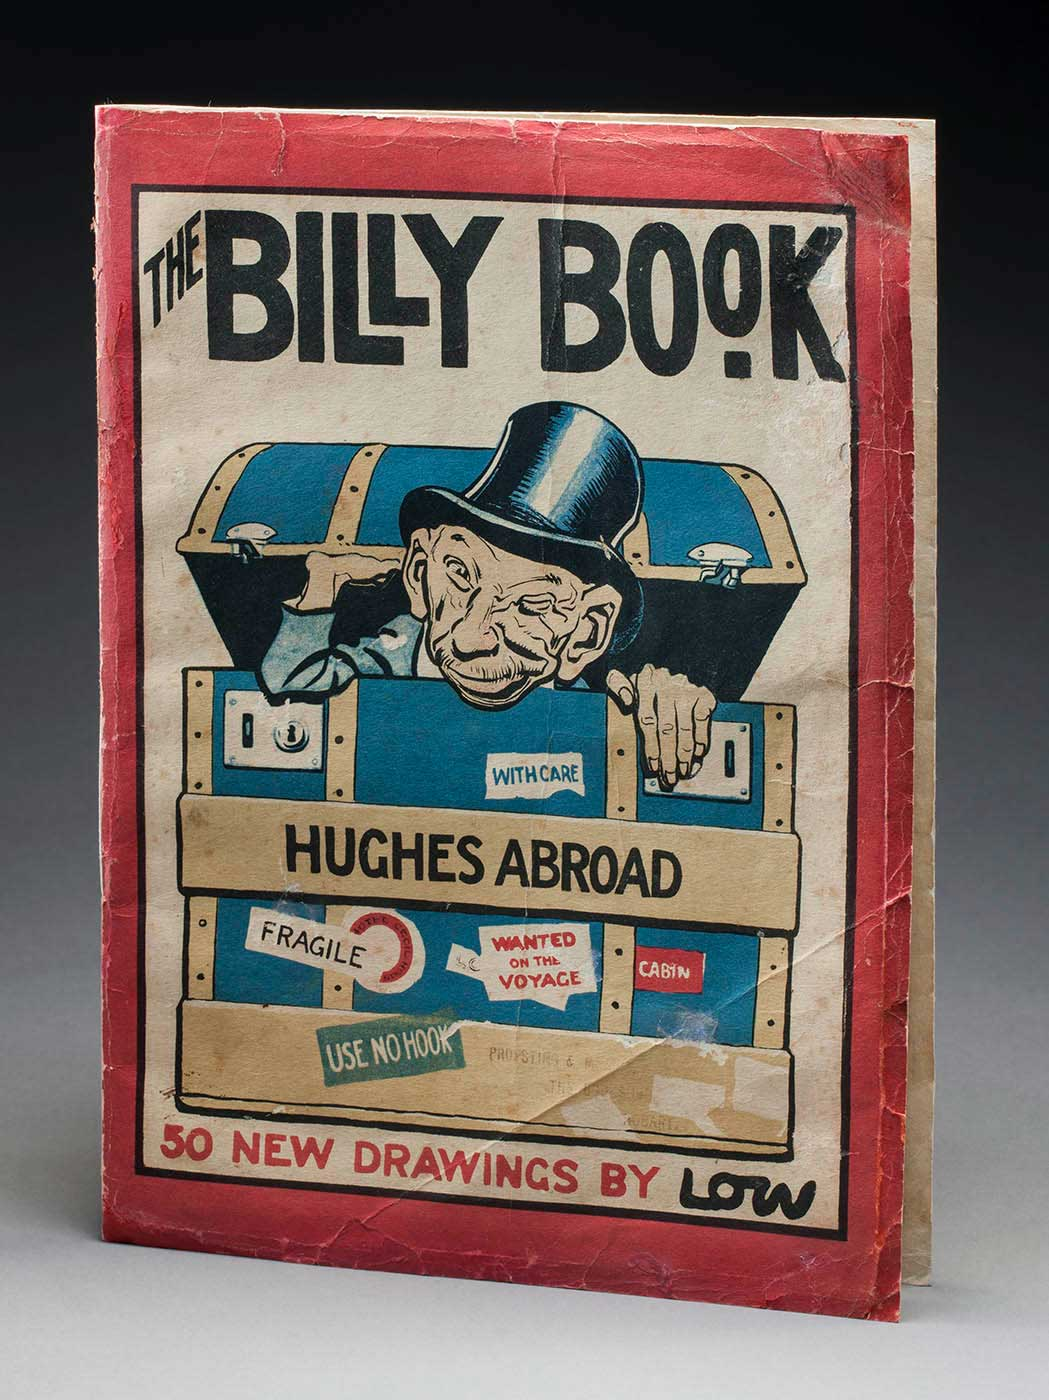 Book titled 'THE BILLY BOOK' with an illustration of a man with a top hat emerging from a chest. - click to view larger image